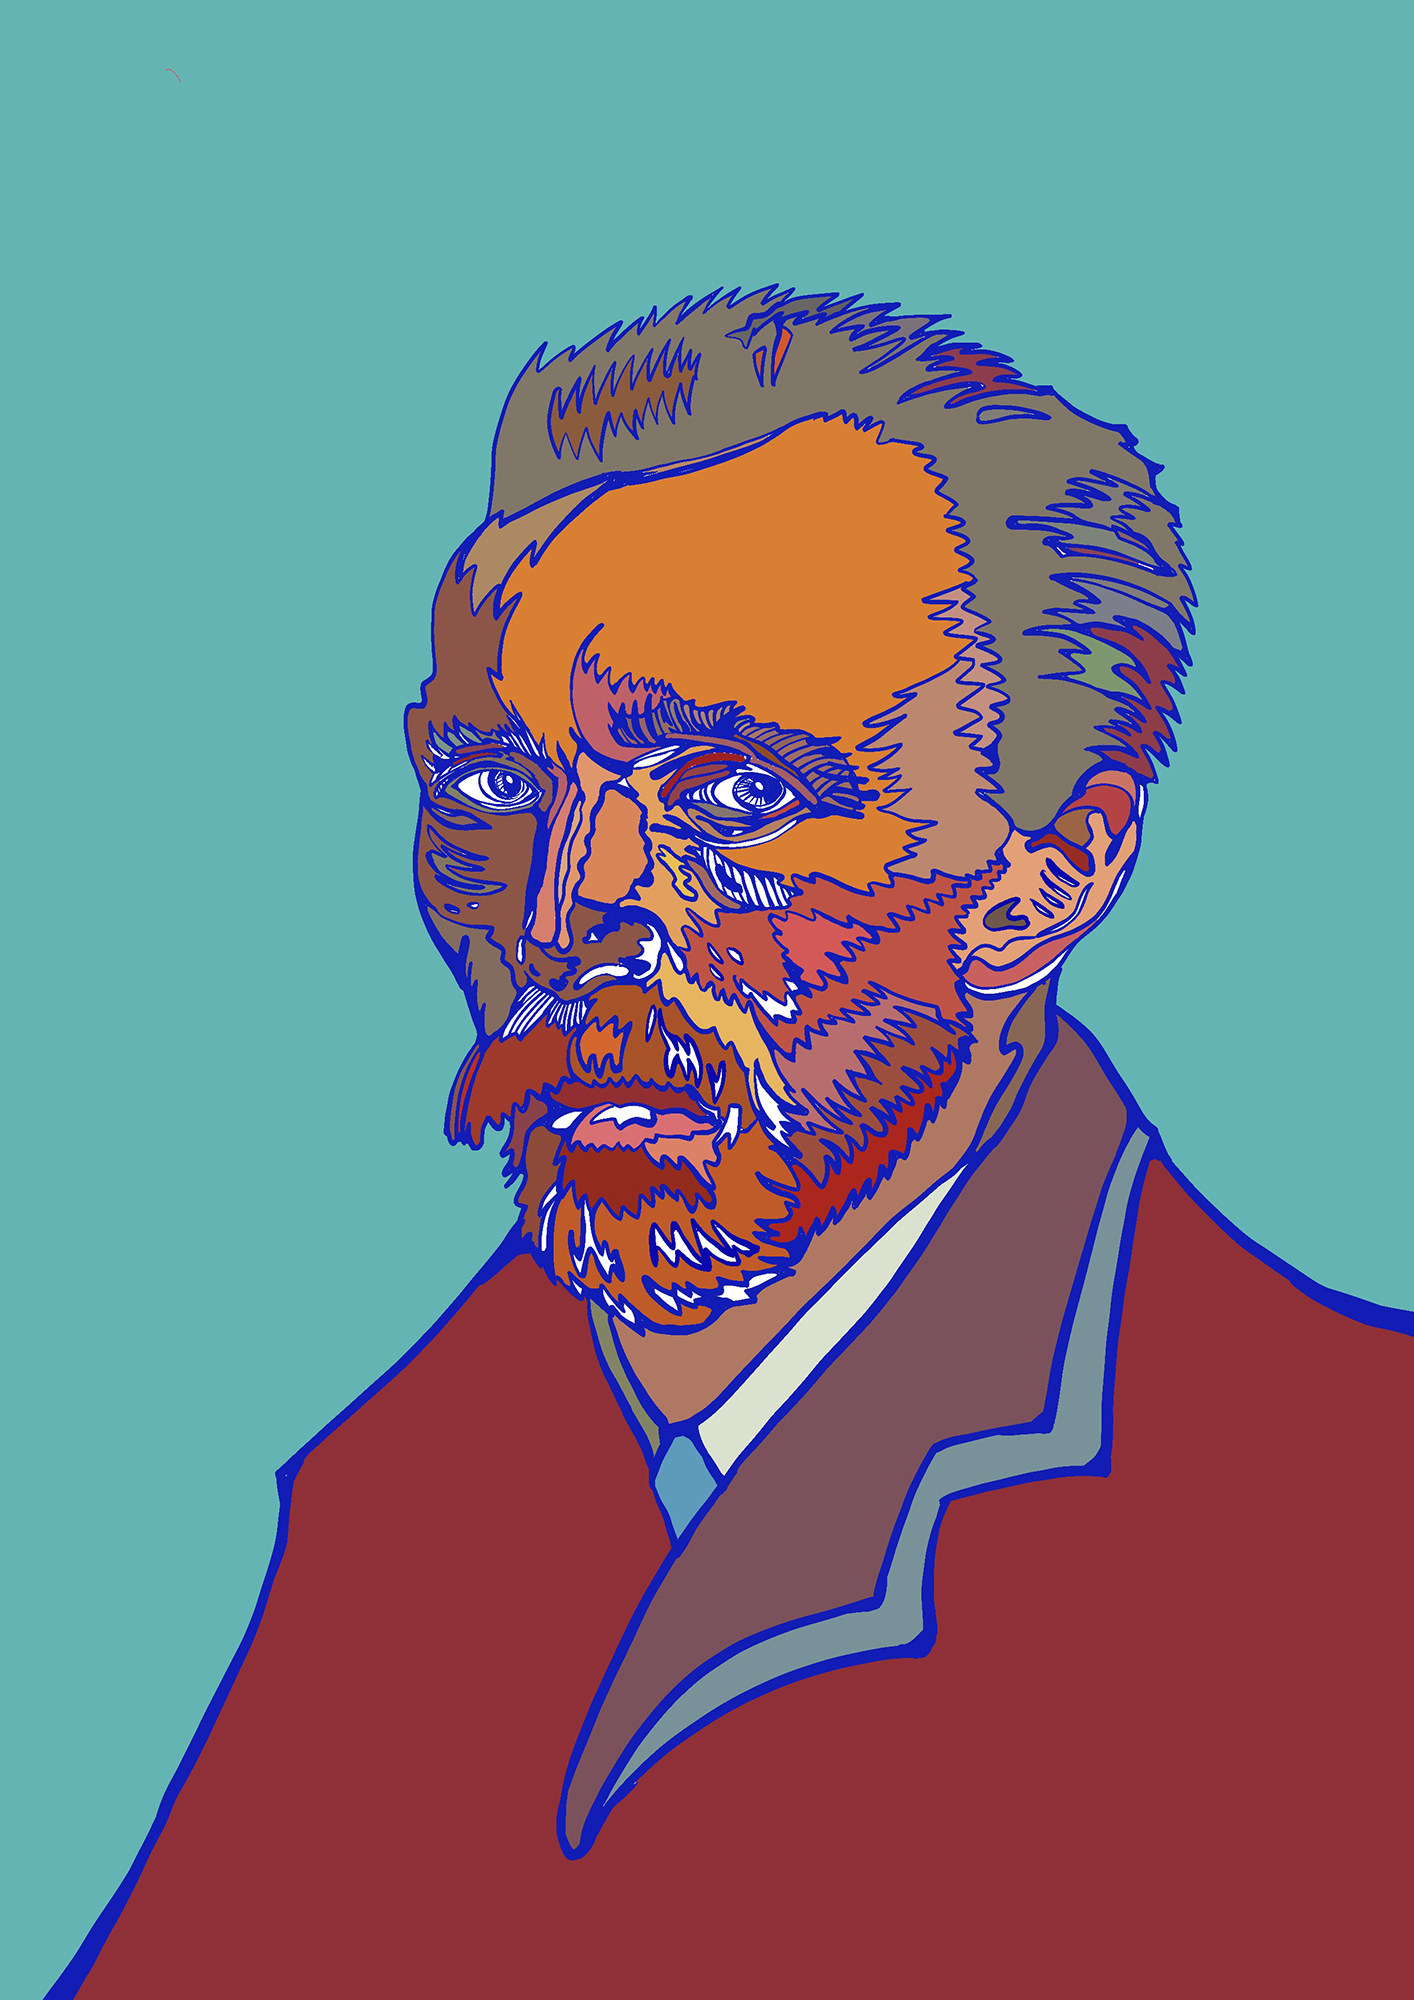 Beloved Van Gogh